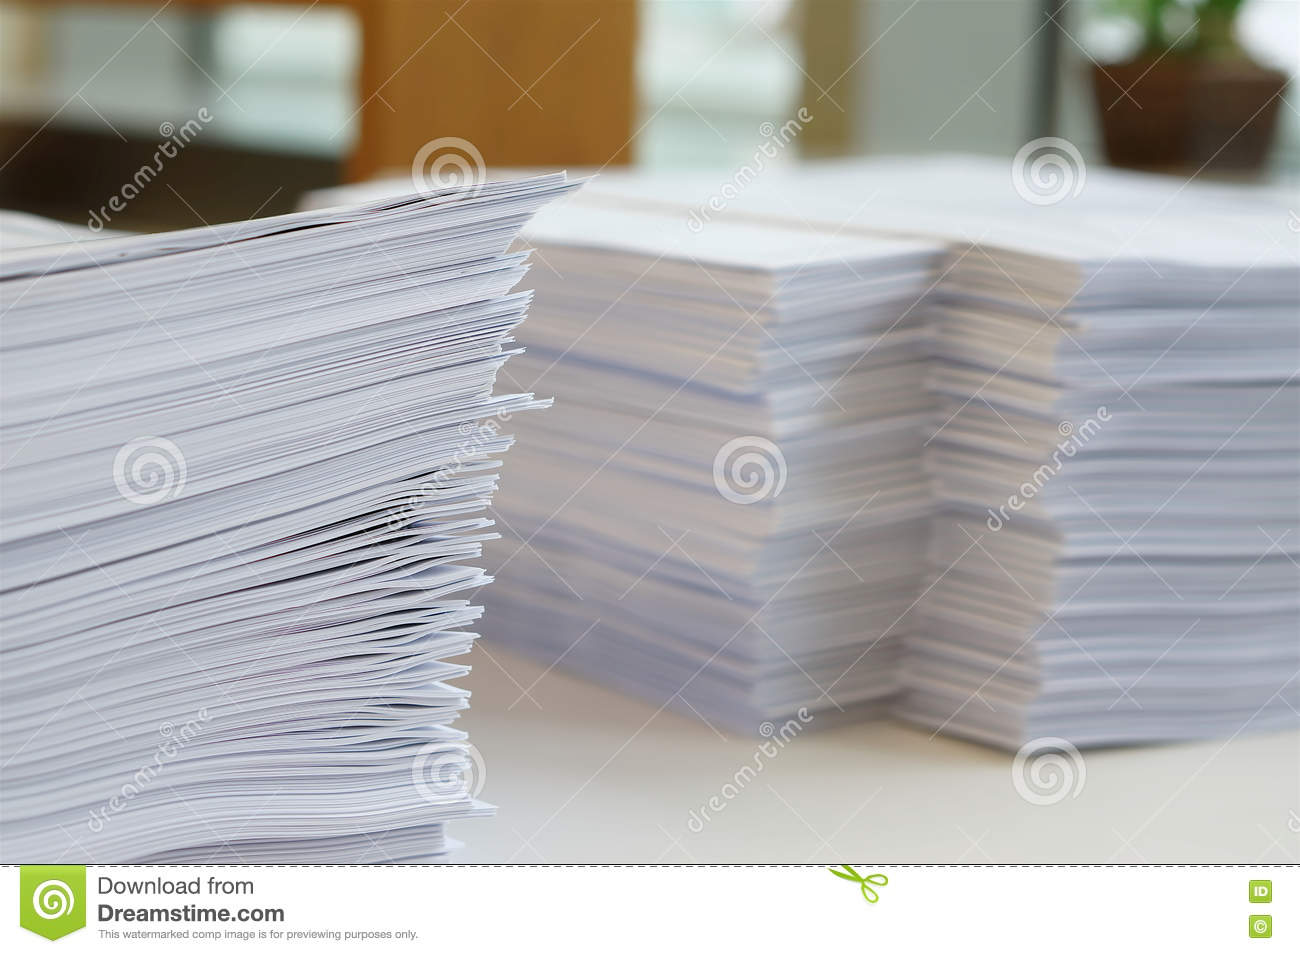 Papers Worksheet At Office Stock Photo Image Of Paperwork